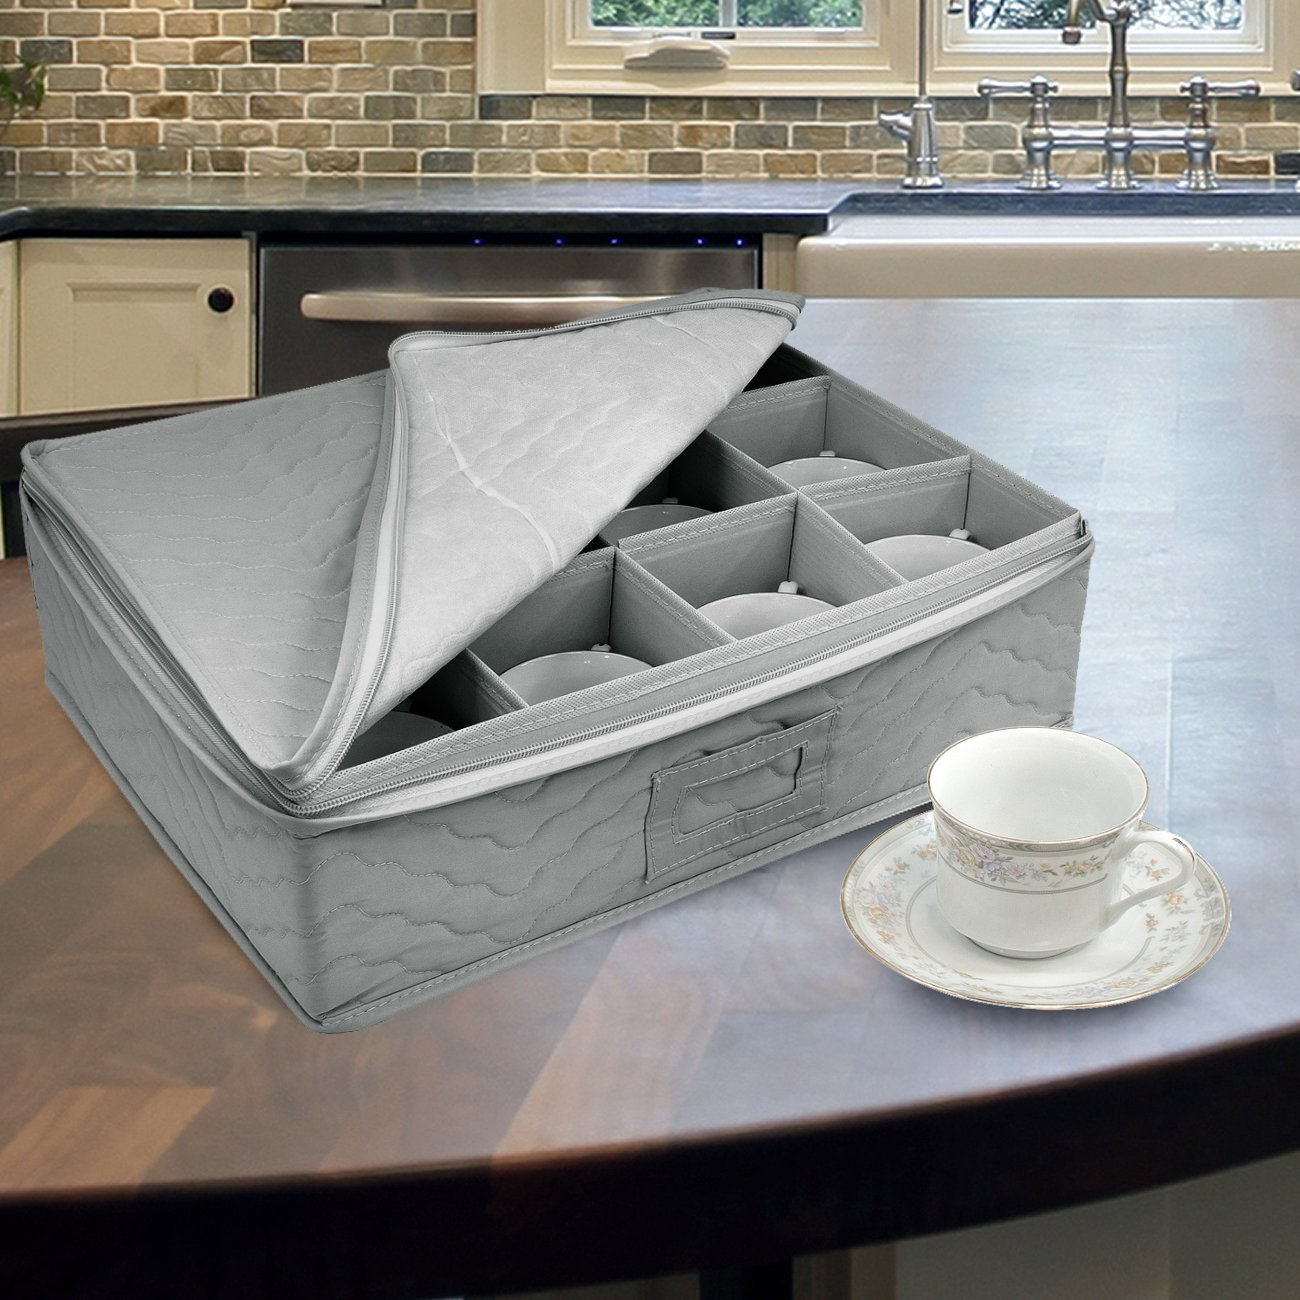 Sorbus Dinnerware Storage 5-Piece Set for Protecting or Transporting Dinnerware — Service for 12 — Round Plate and Cup Quilted Protection, Felt Protectors for Plates, Fine China Case (Gray) by Sorbus (Image #5)